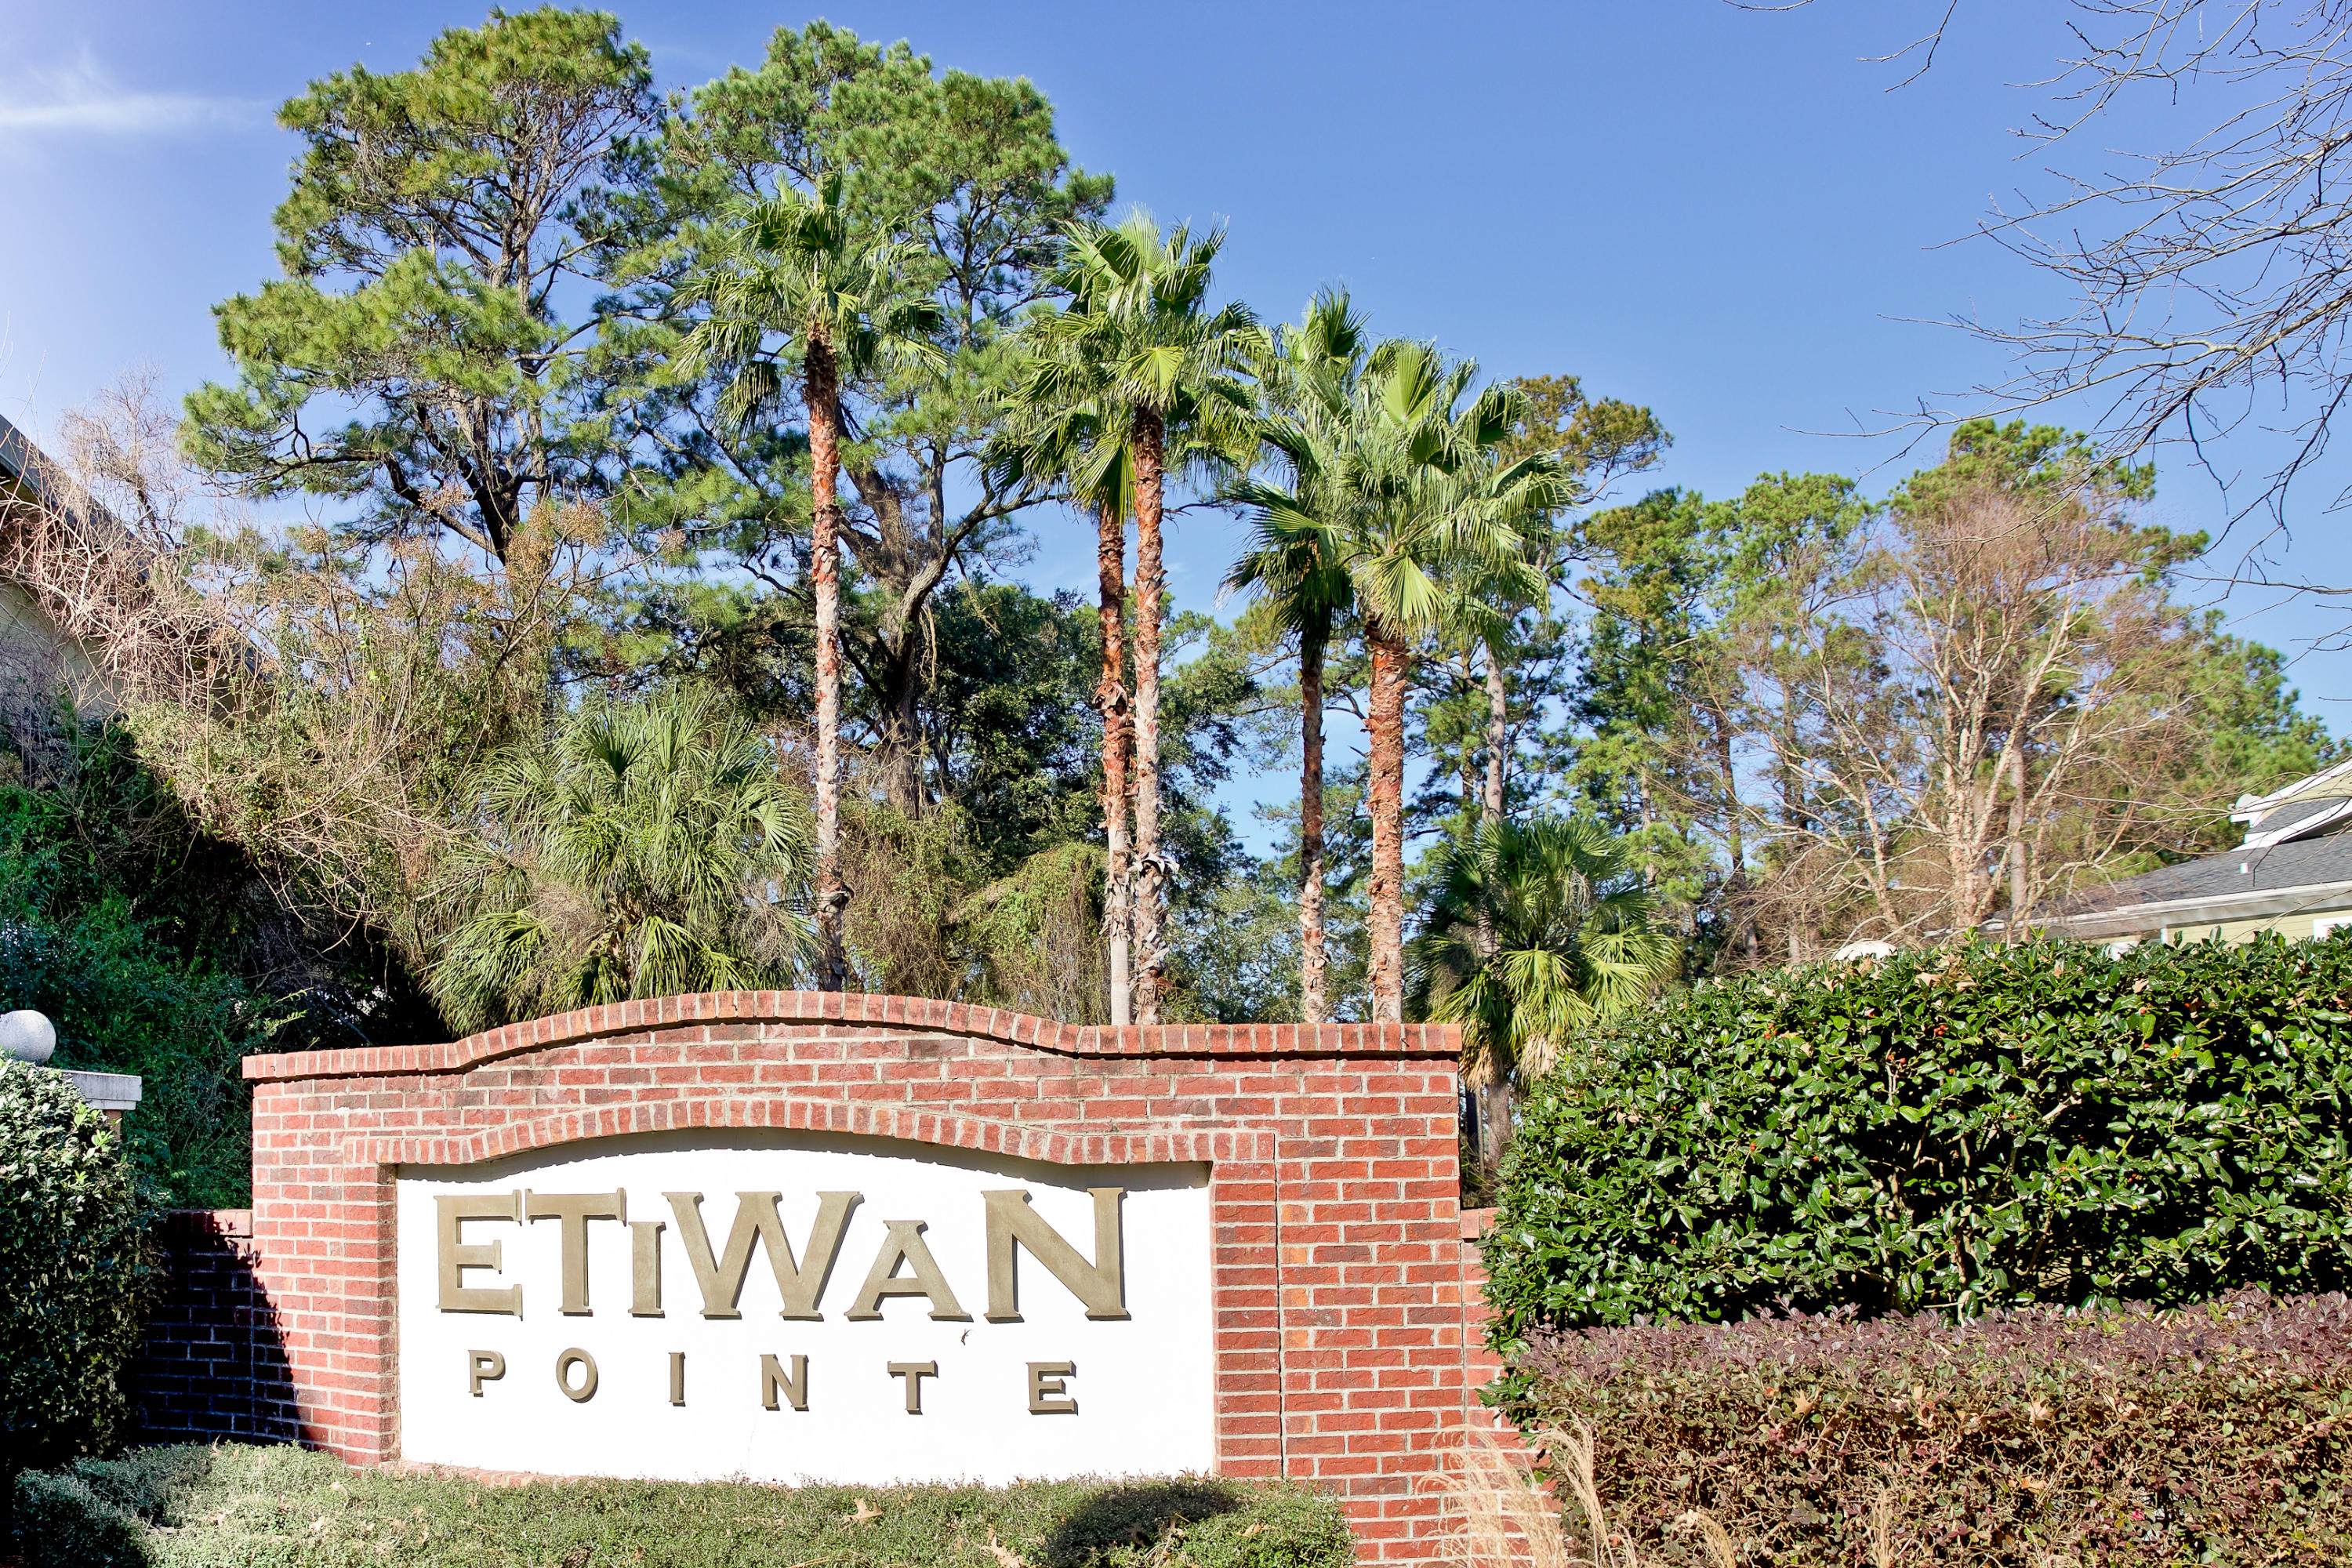 Etiwan Pointe Homes For Sale - 113 Etiwan Pointe, Mount Pleasant, SC - 12